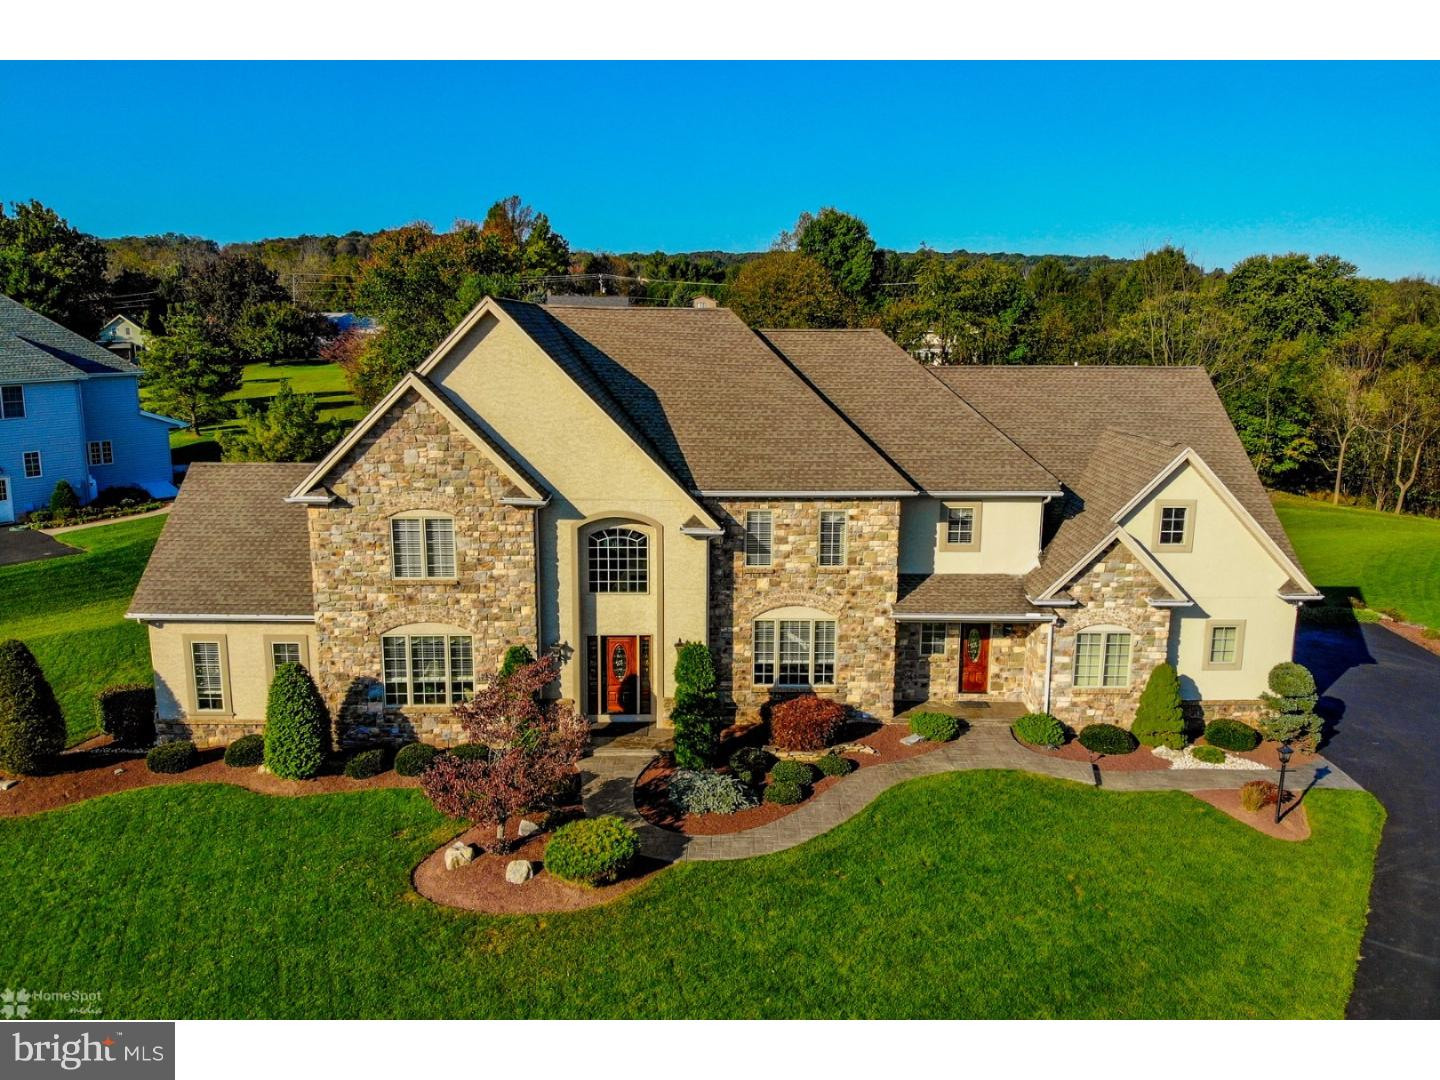 5605 TUSCANY COURT, COOPERSBURG, PA 18036